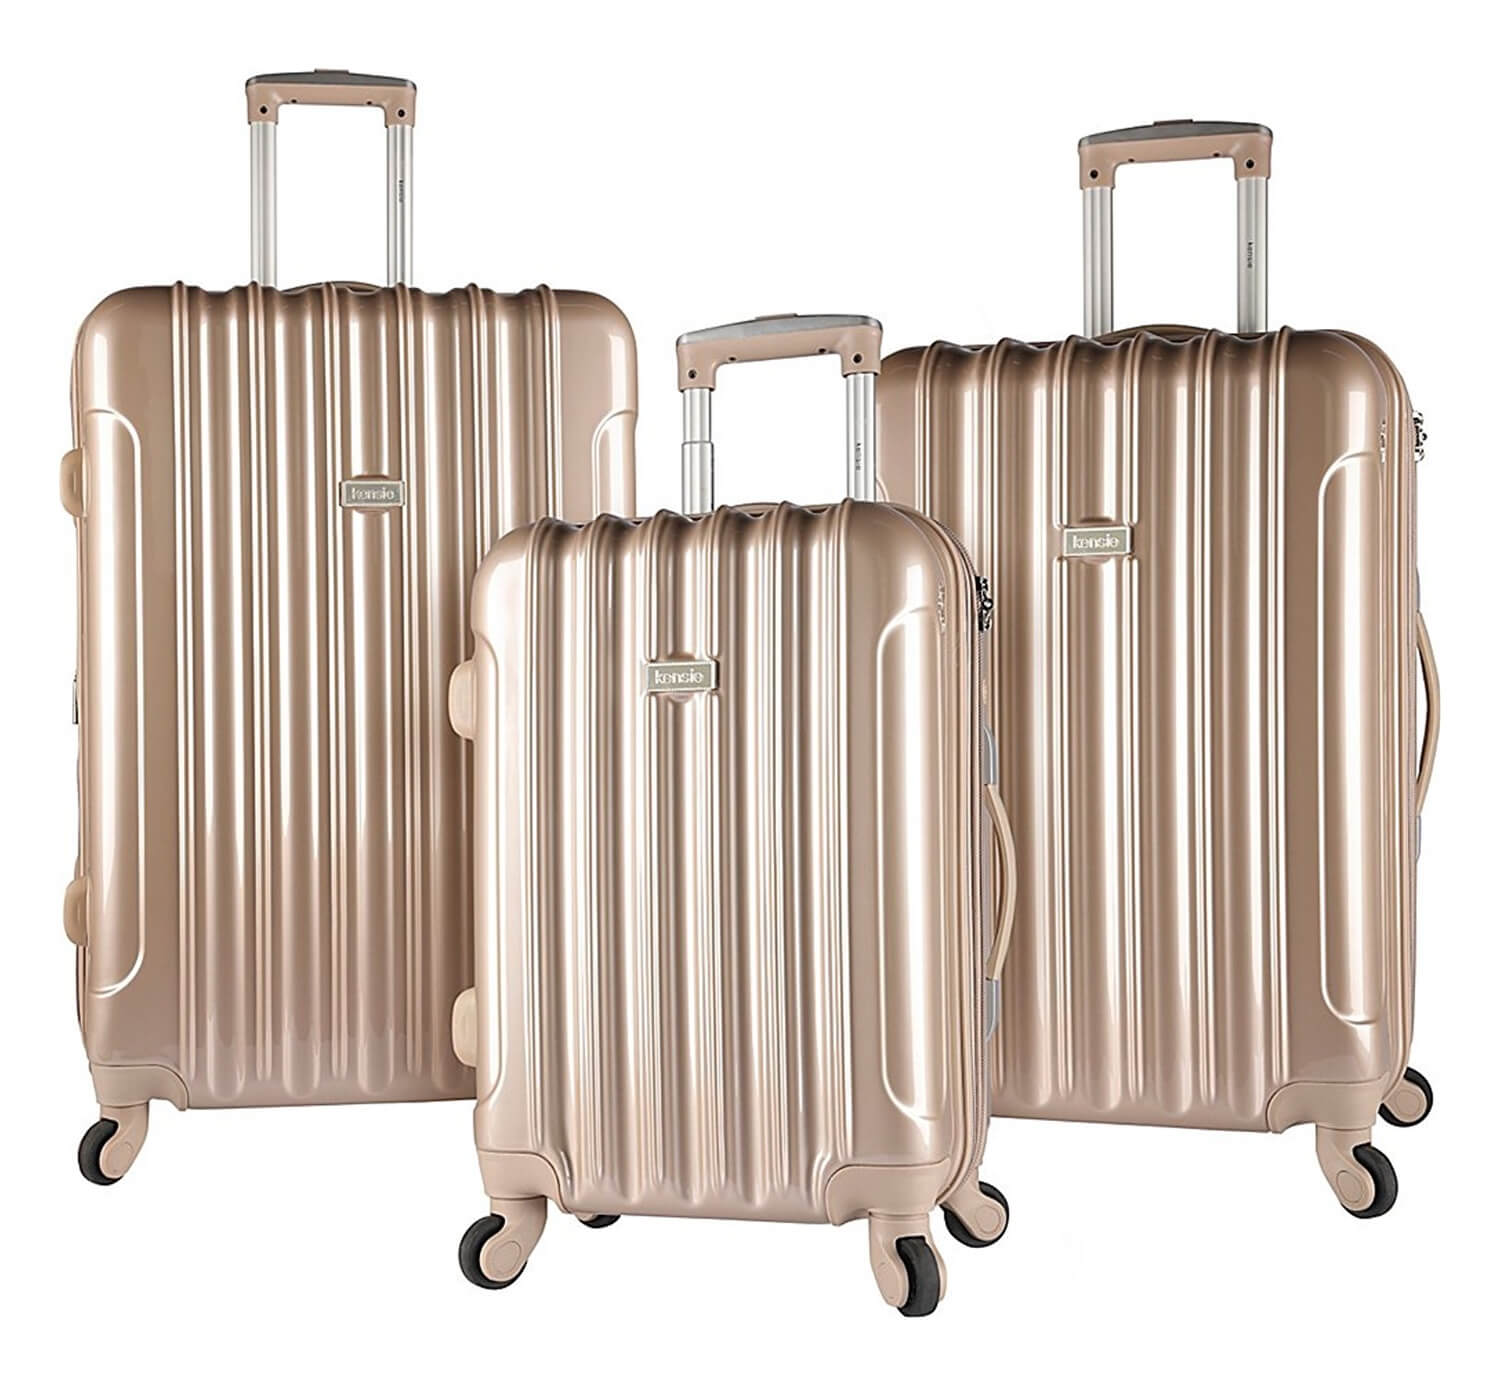 Family Luggage Sets 7 Best Luggage Sets For Family Travel